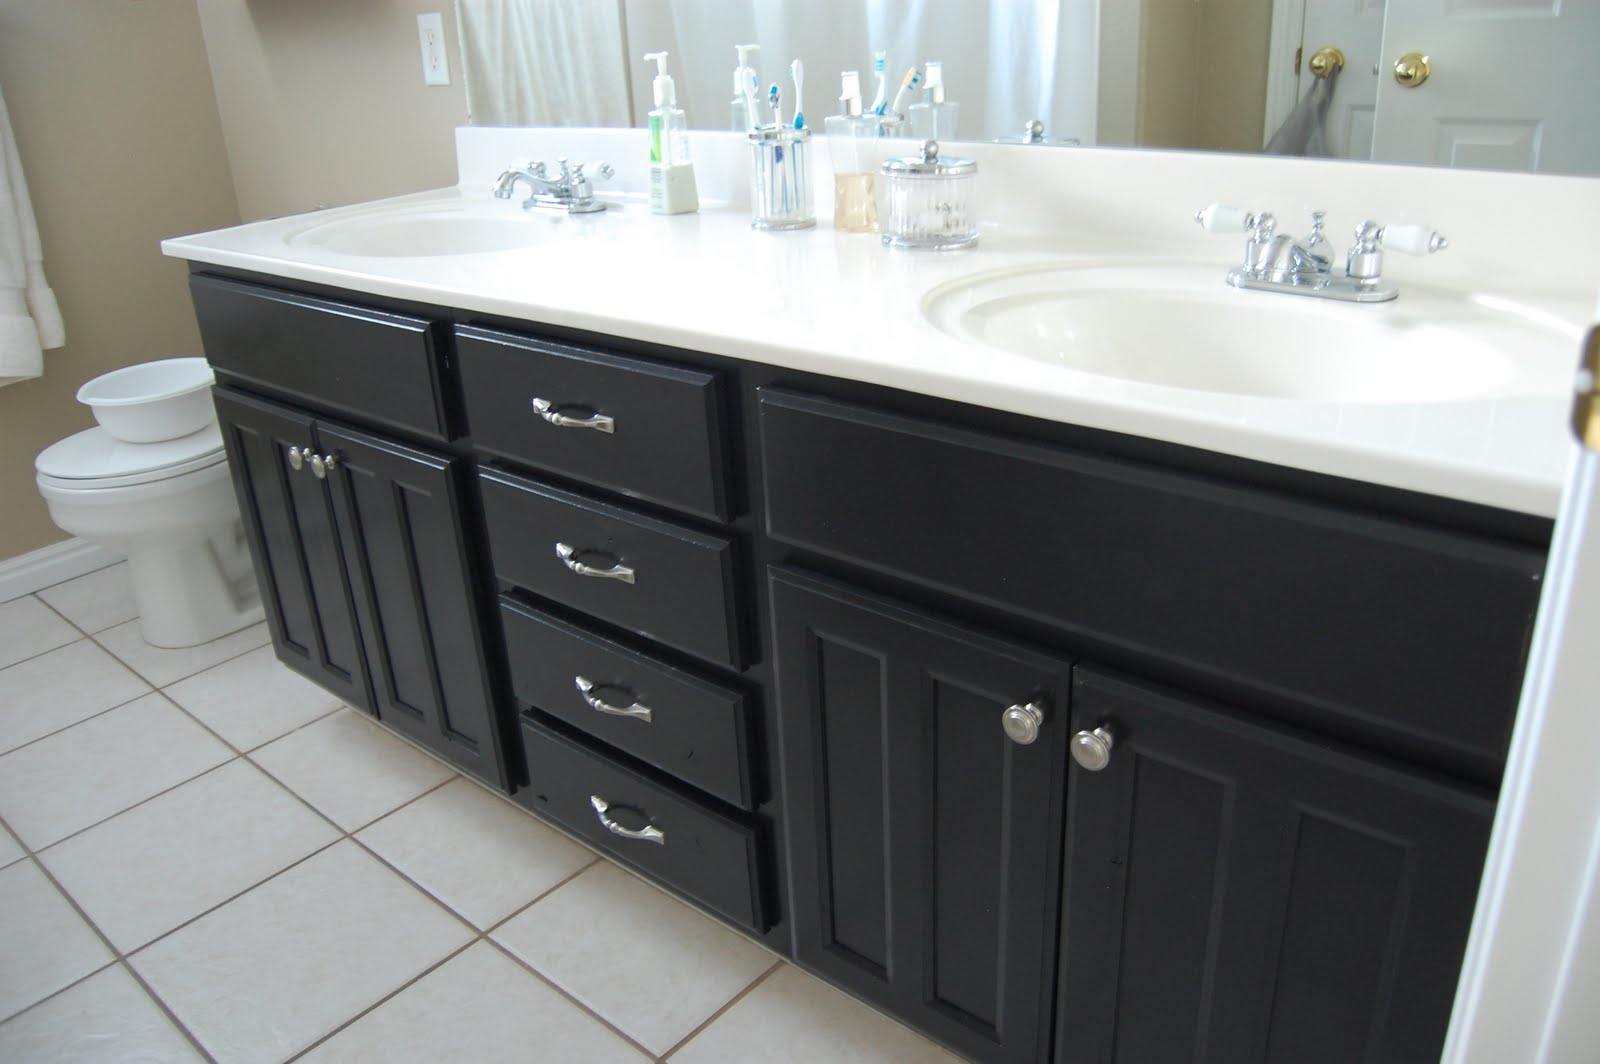 Marvelous Black Bathroom Vanities With Large Vanity Derektime Design Granite Tops Denver For